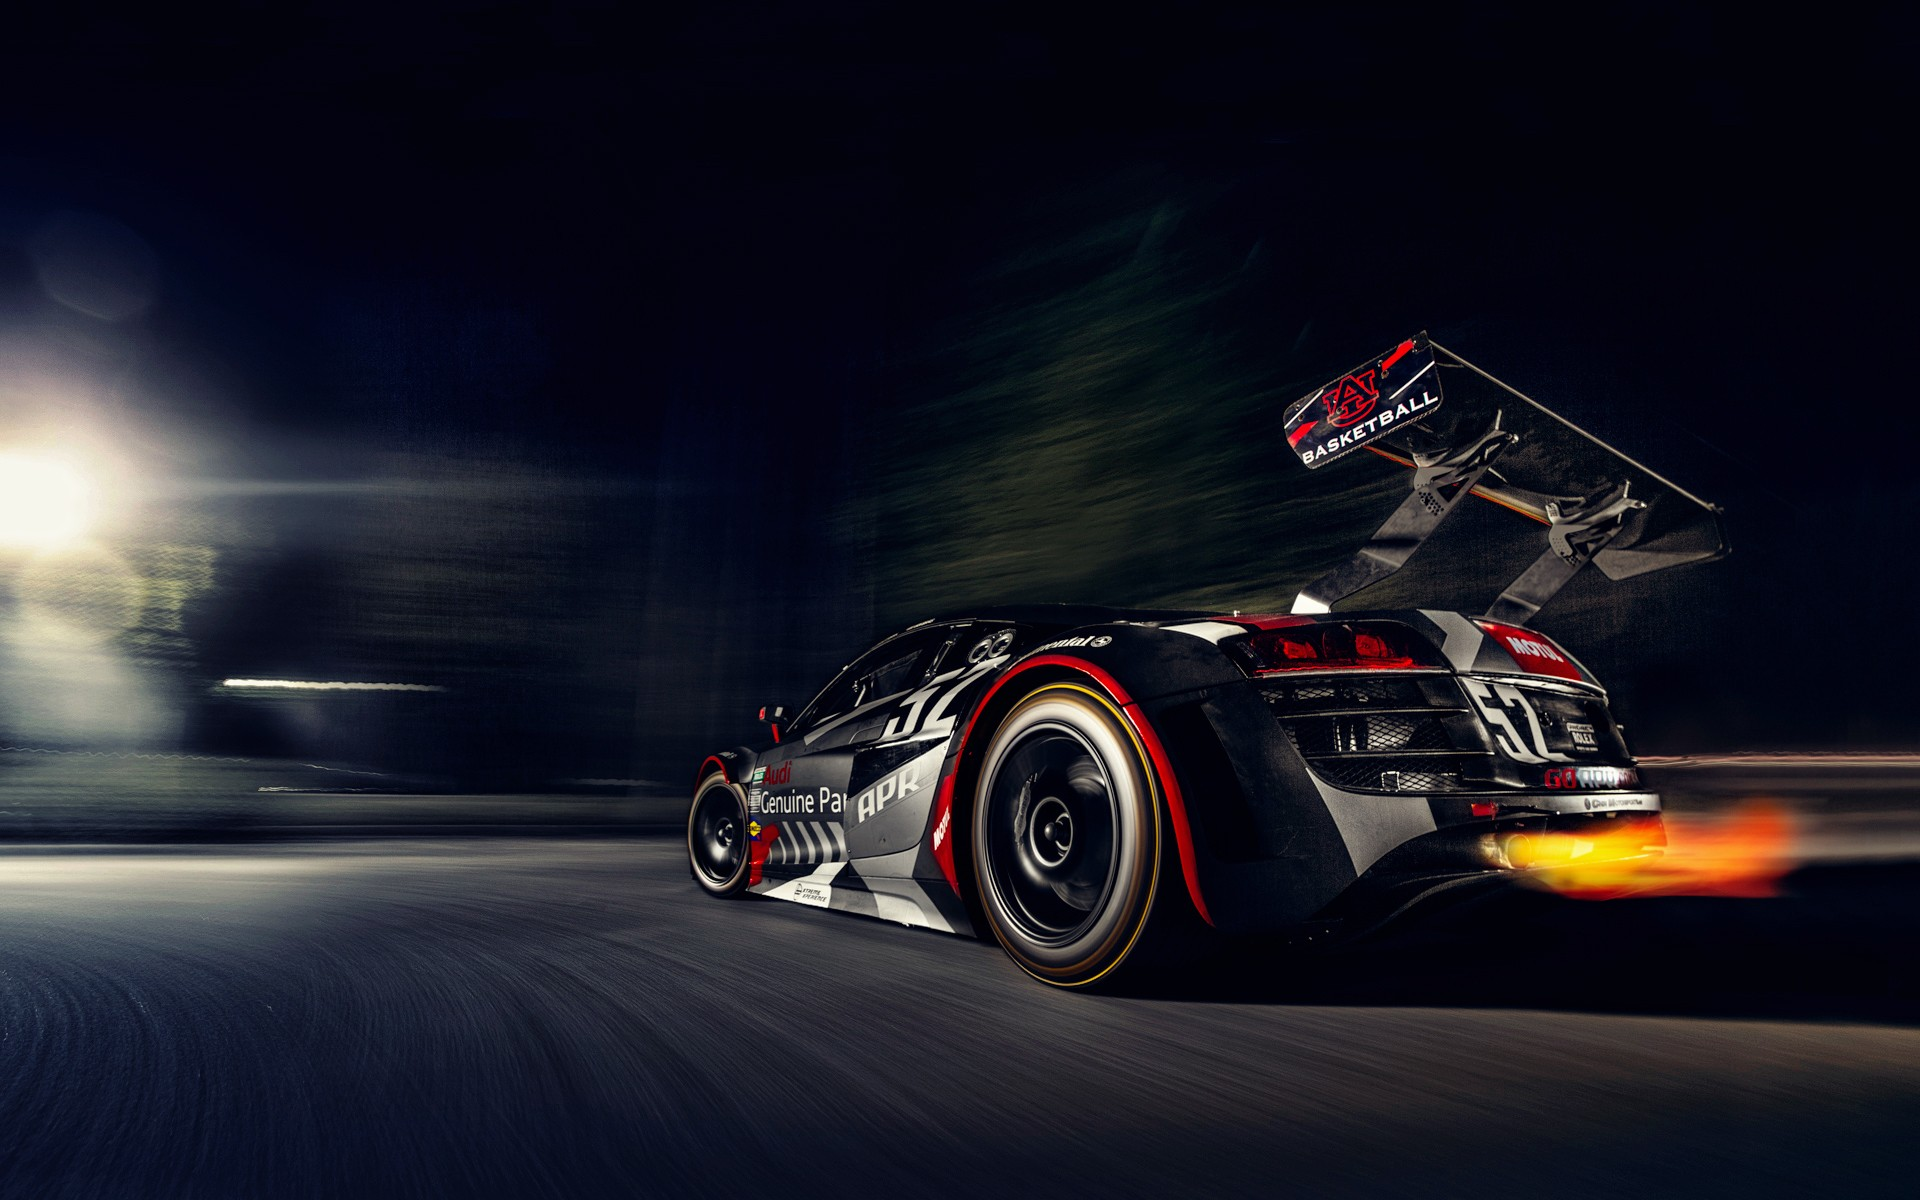 Racing Car Hd Wallpaper 29 Hd Wallpaper Hivewallpaper 1920x1200